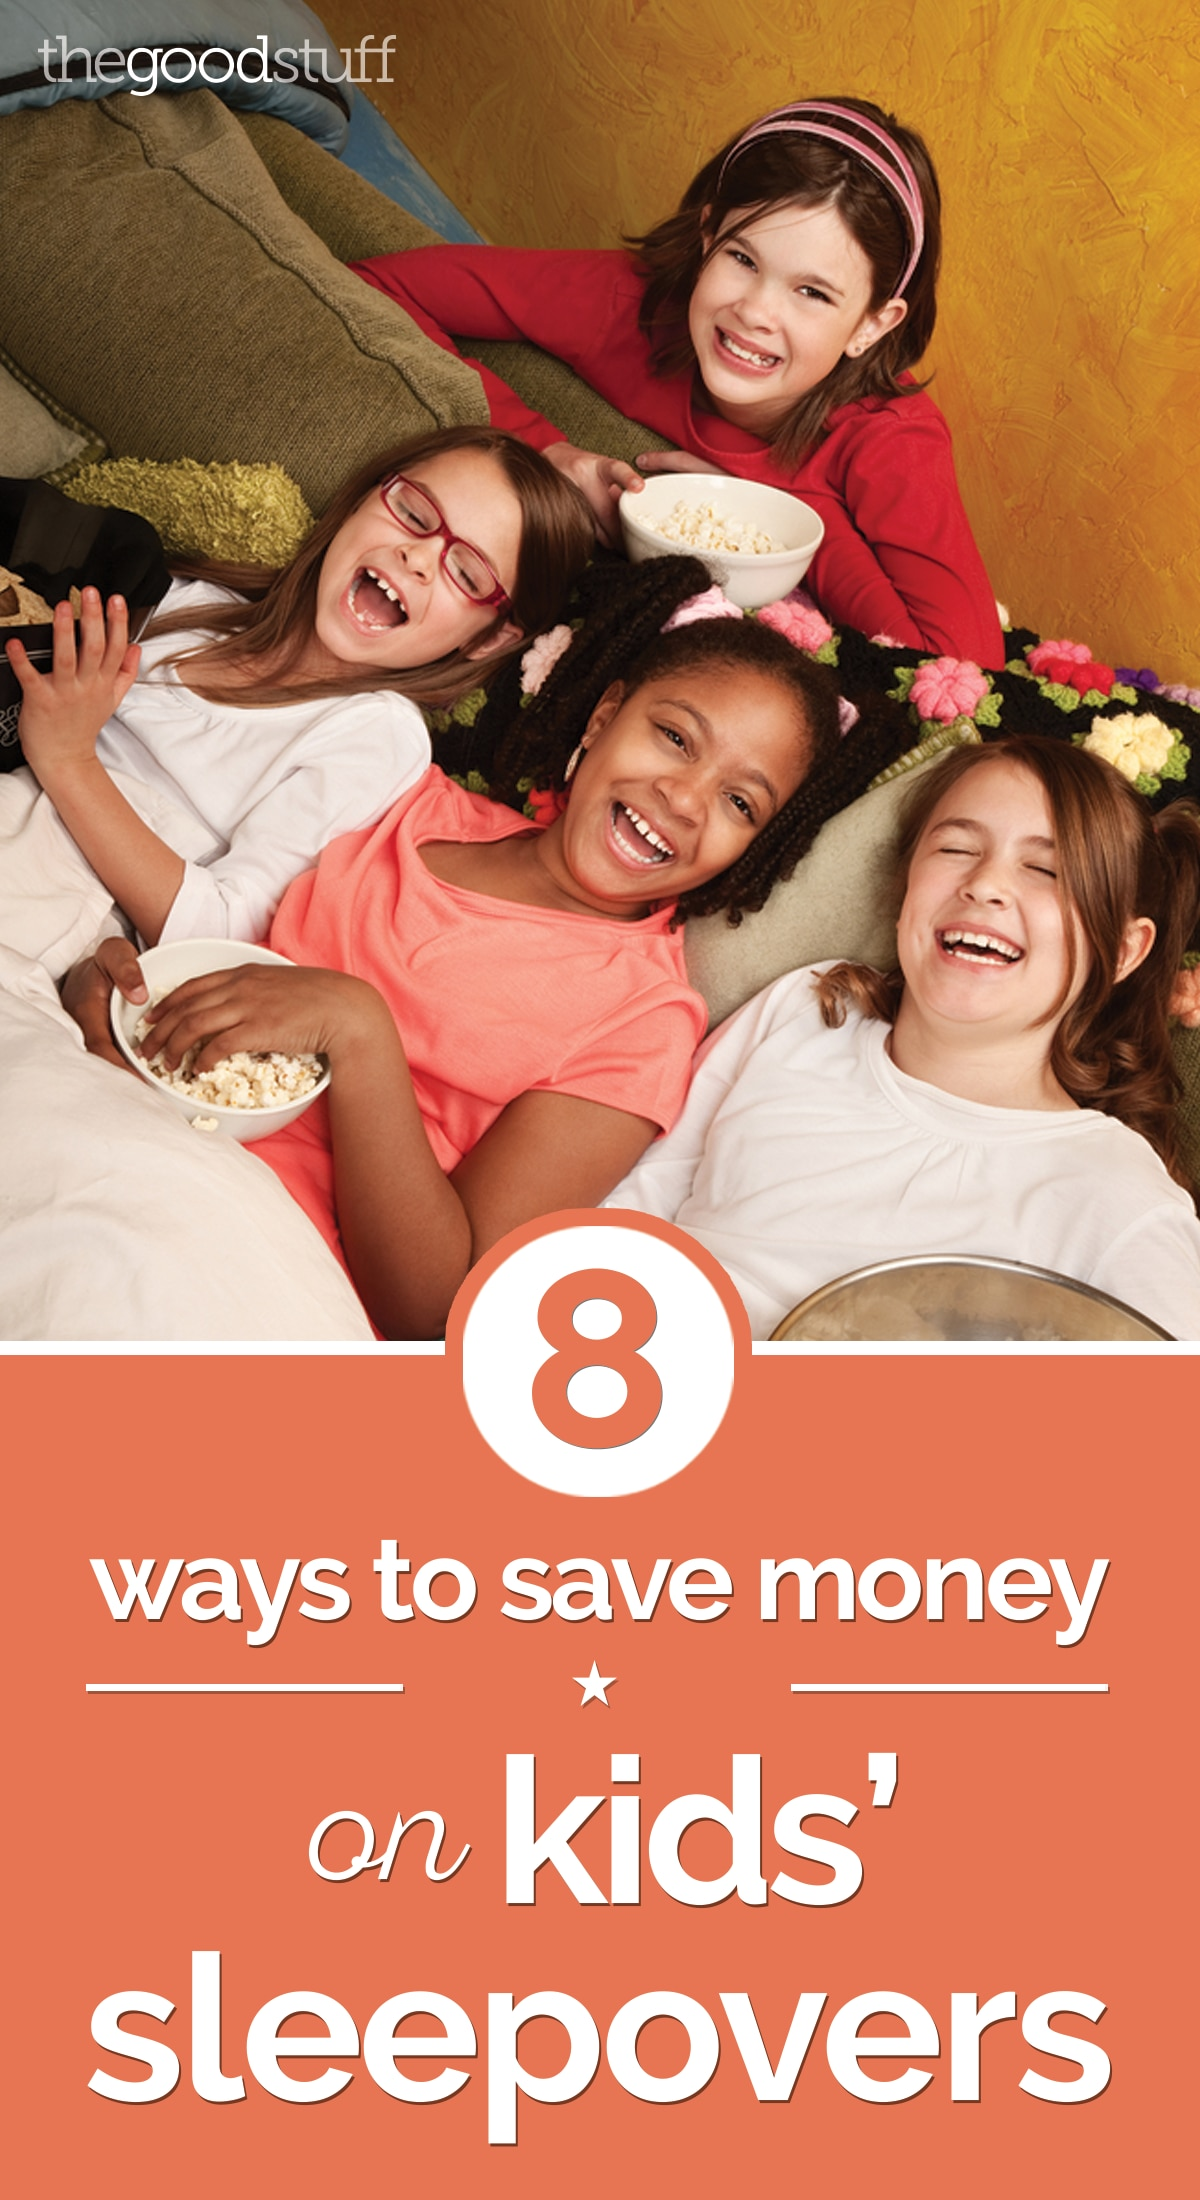 8 Ways to Save Money on Kids' Sleepovers | thegoodstuff